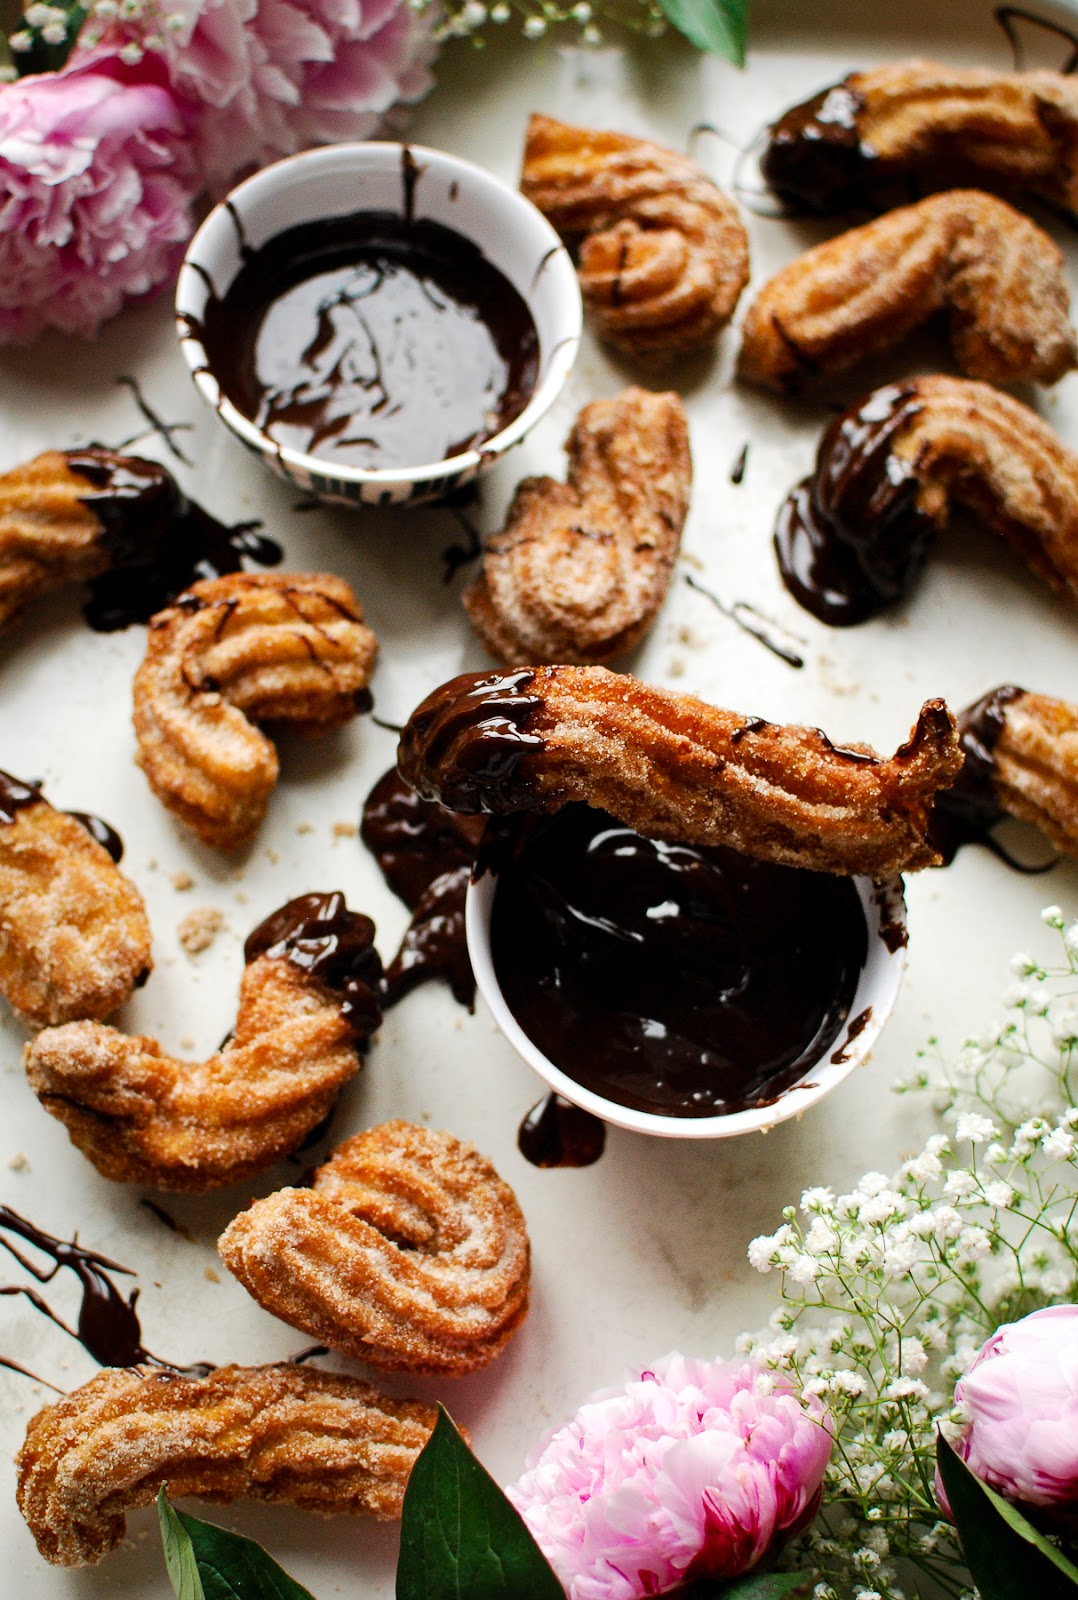 Churros with a hot chocolate dipping sauce. I know, right?!